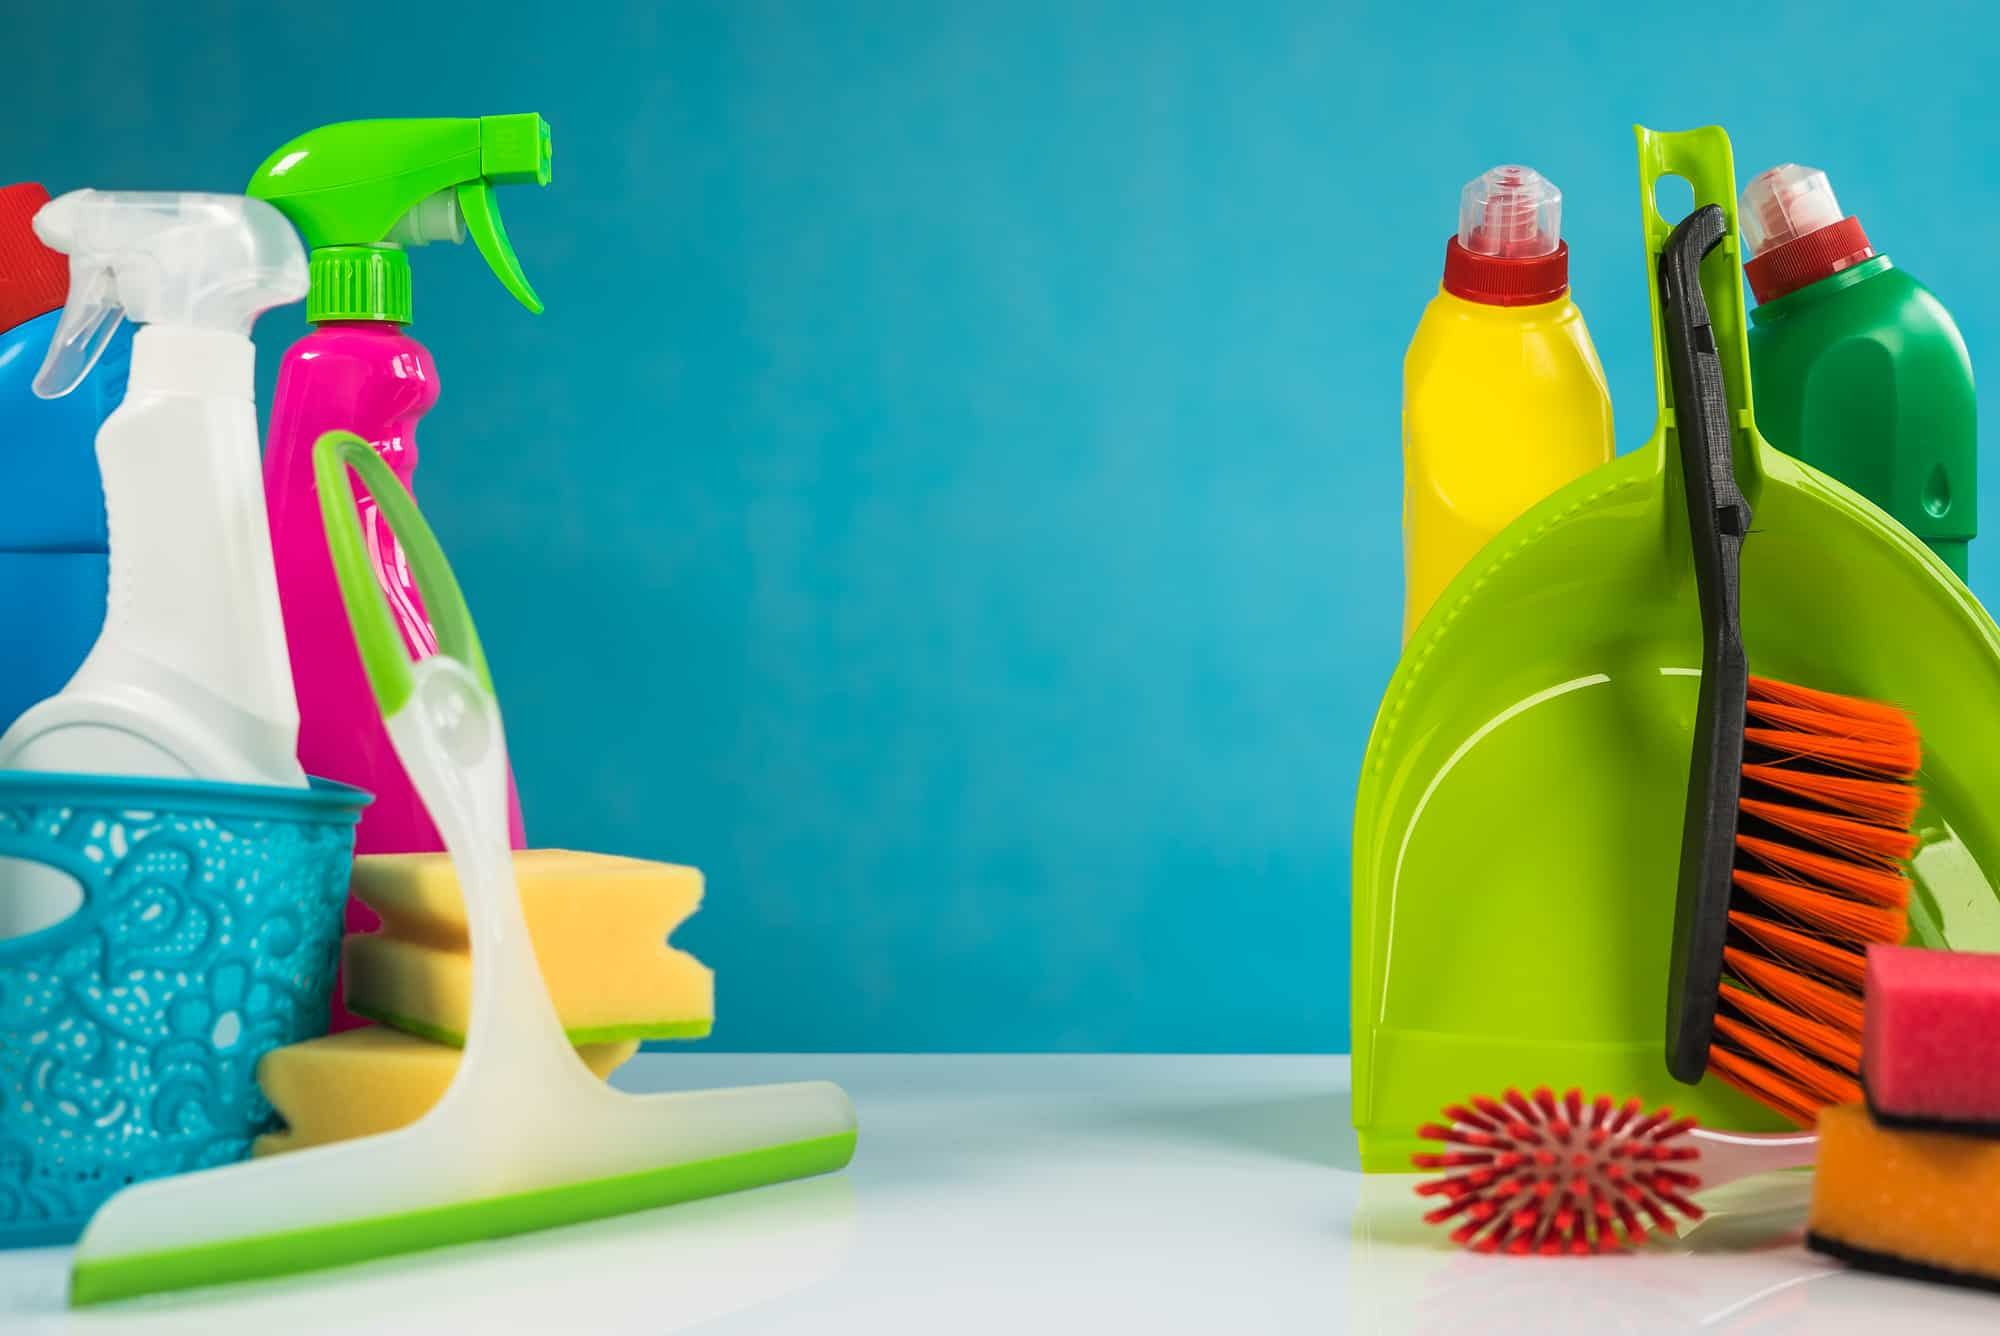 cleaning products against a blue background